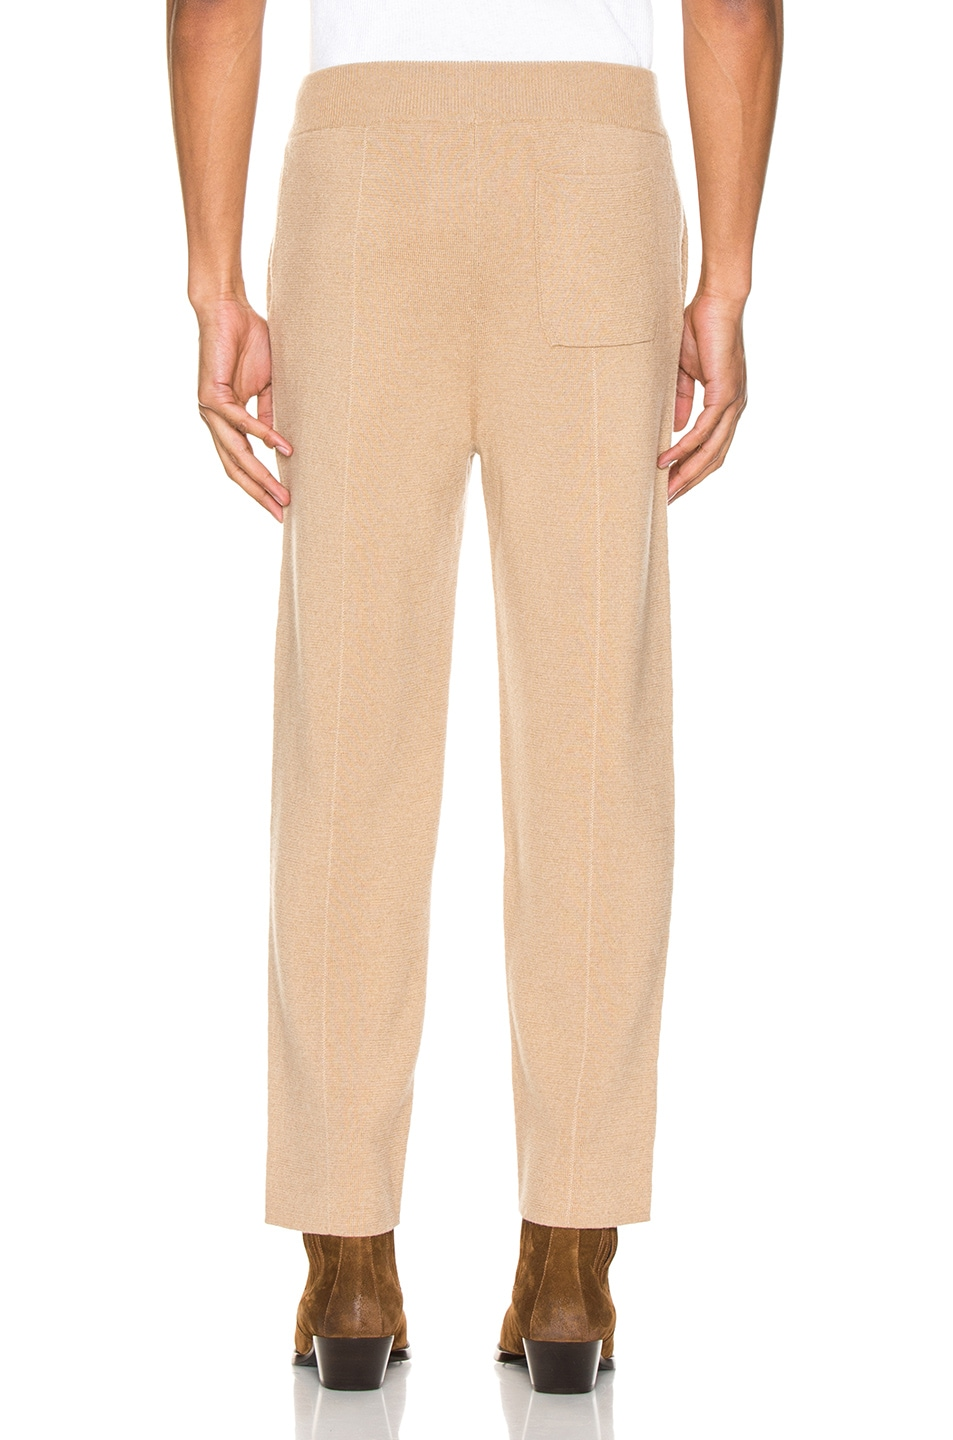 Image 3 of Haider Ackermann Knitted Trousers in Invidia Camel